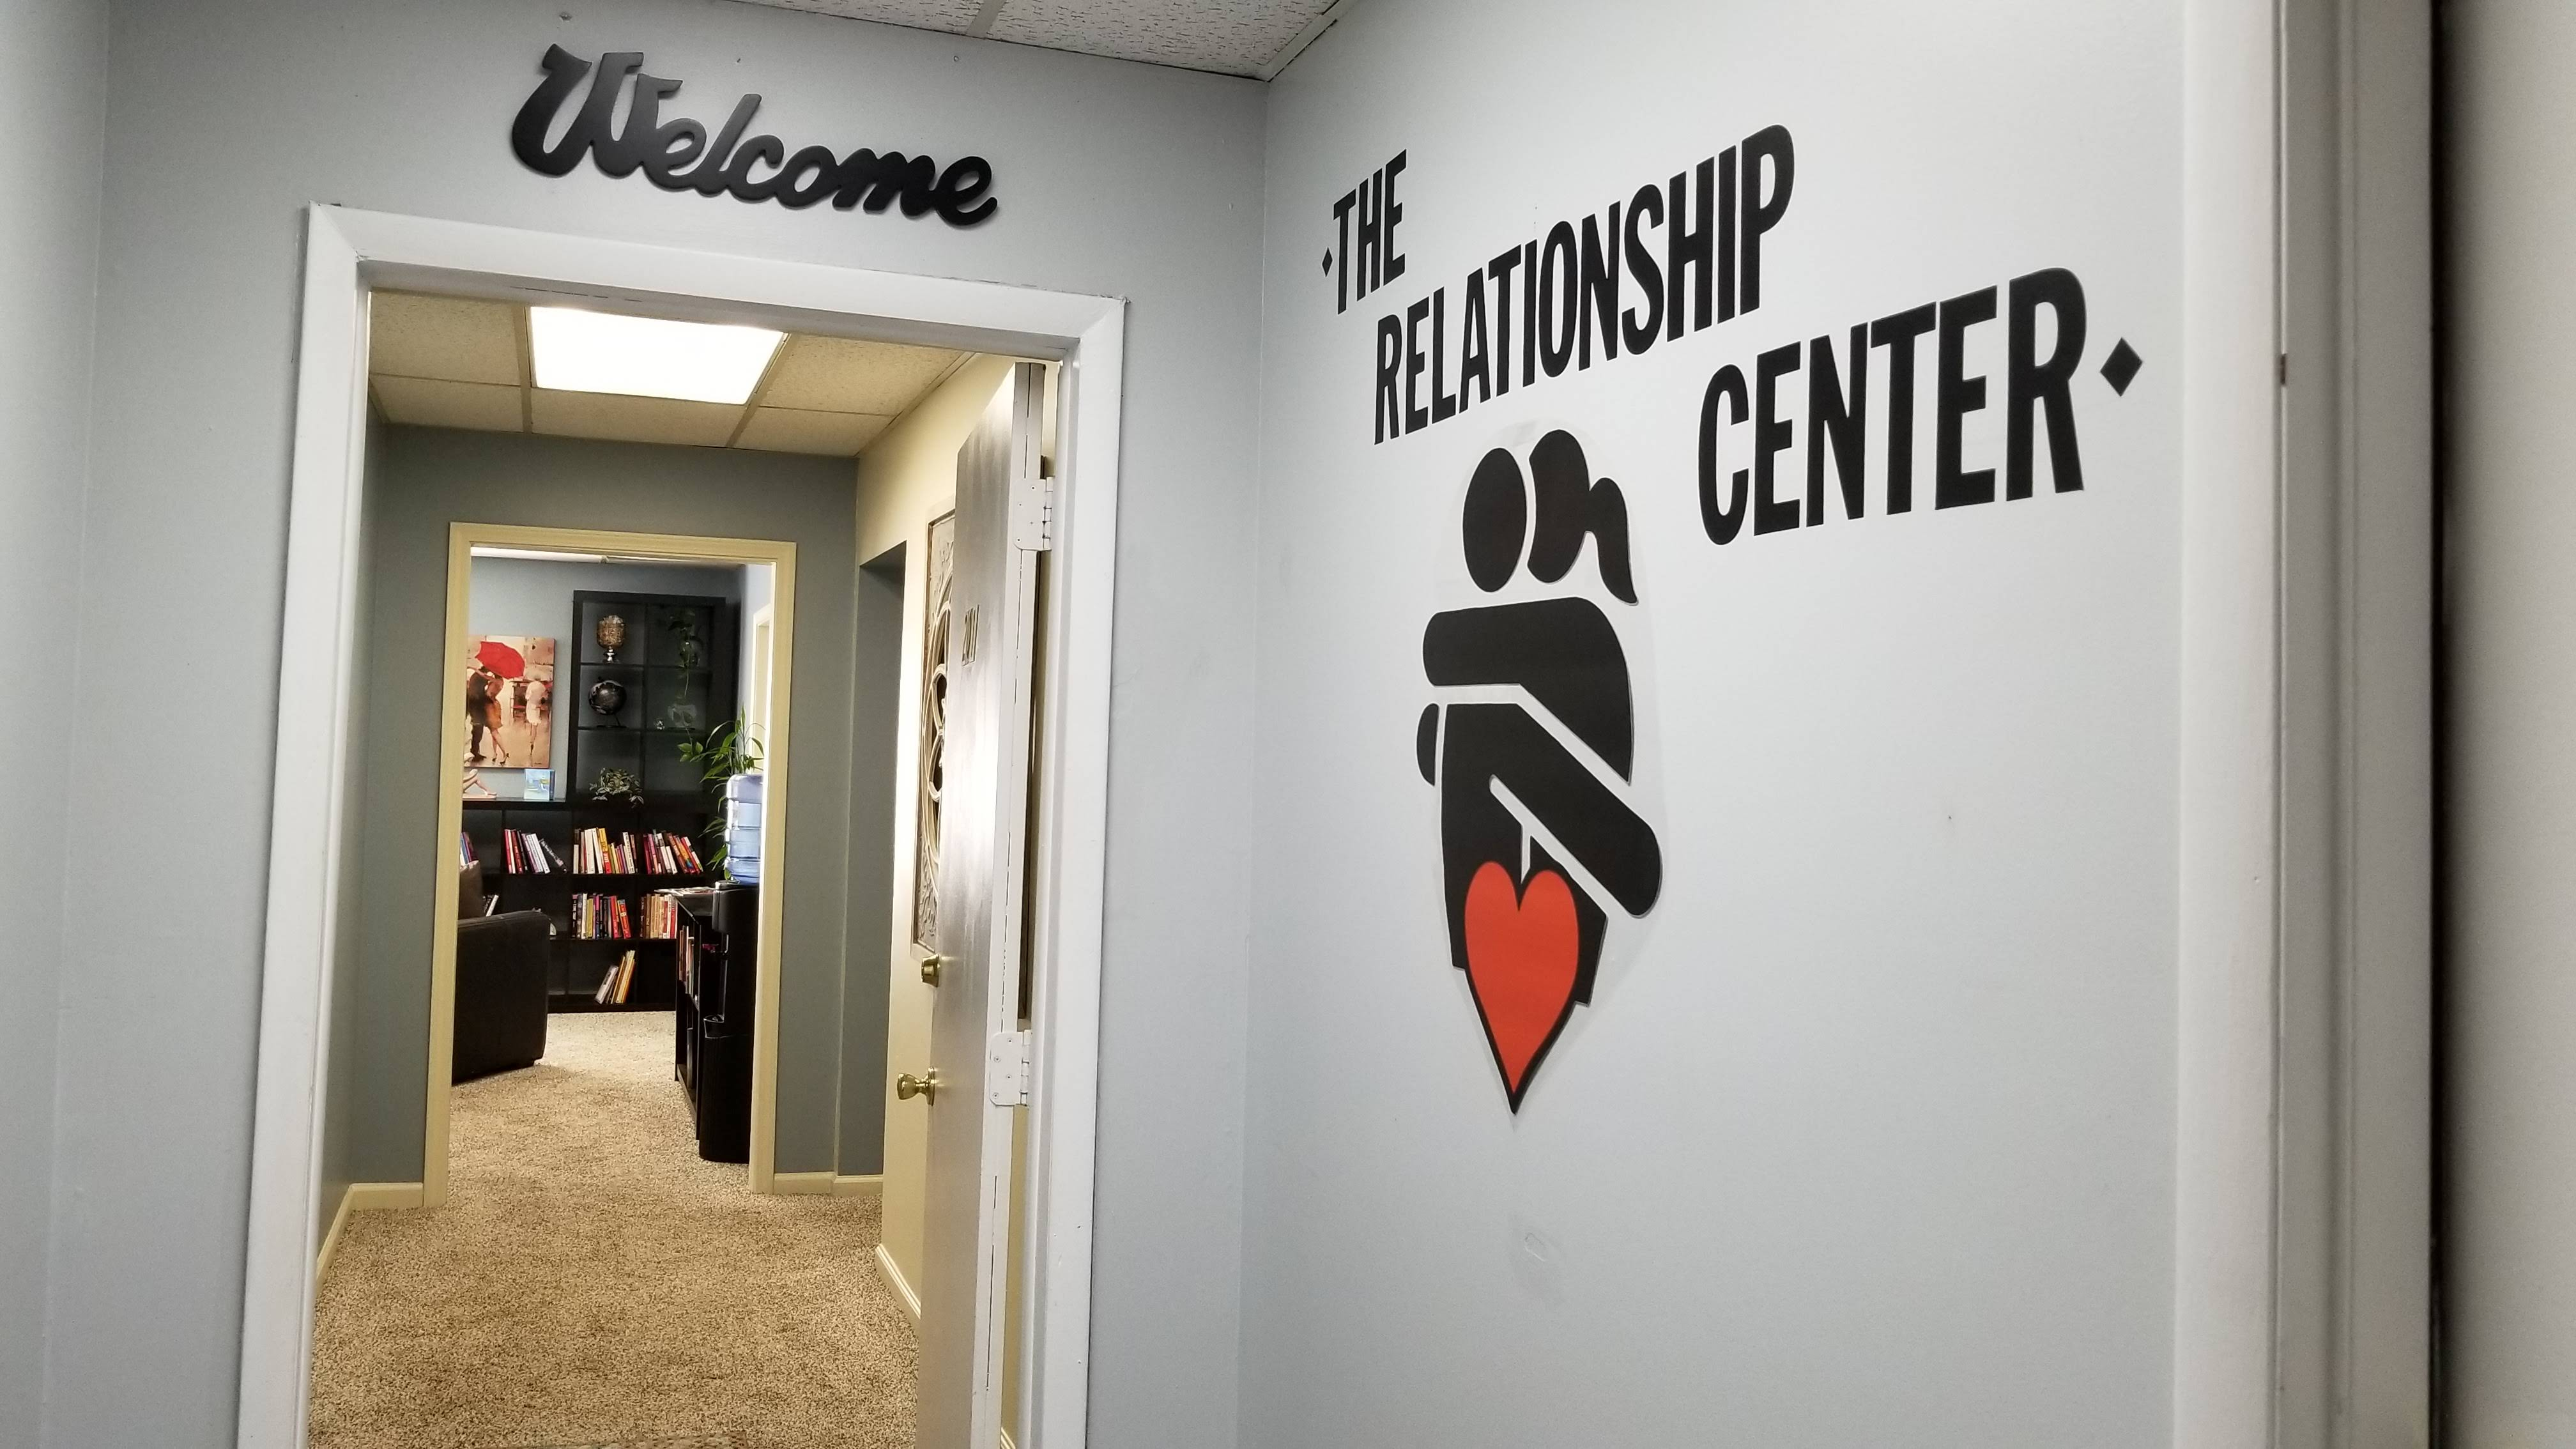 Welcome to the Center